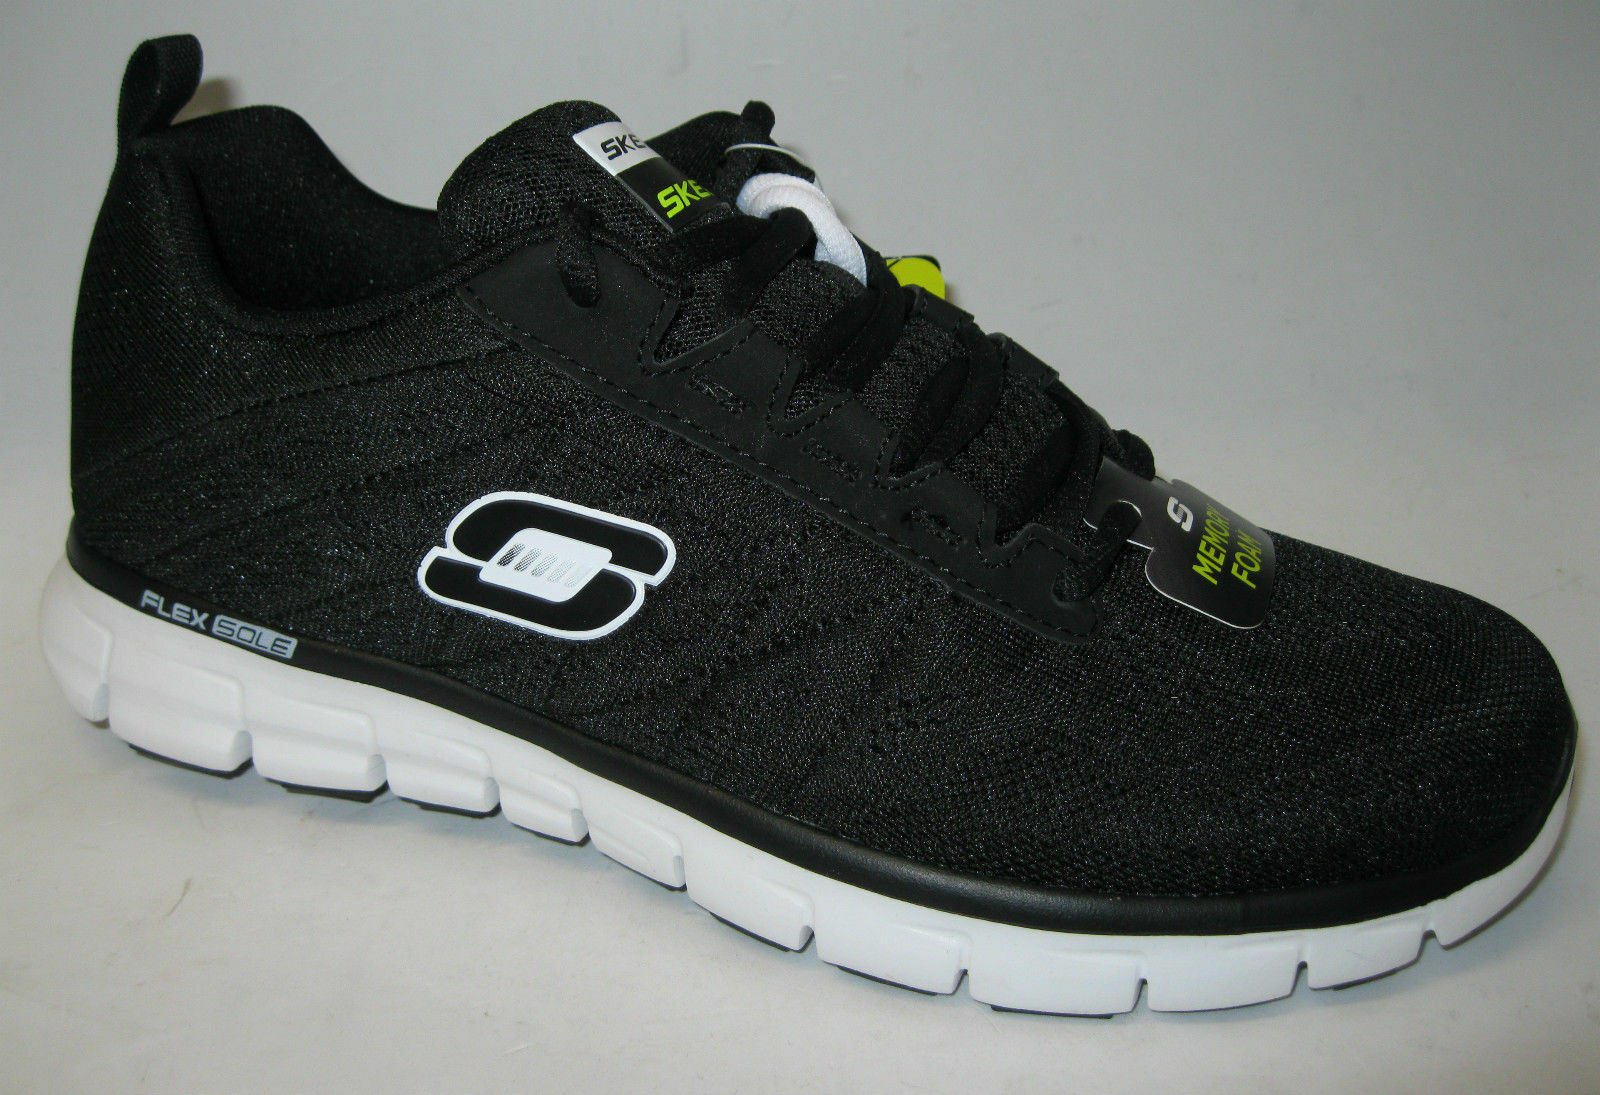 SKECHERS Men's Memory Foam Lace Up Athletic Trainers Power Switch Flex Sole